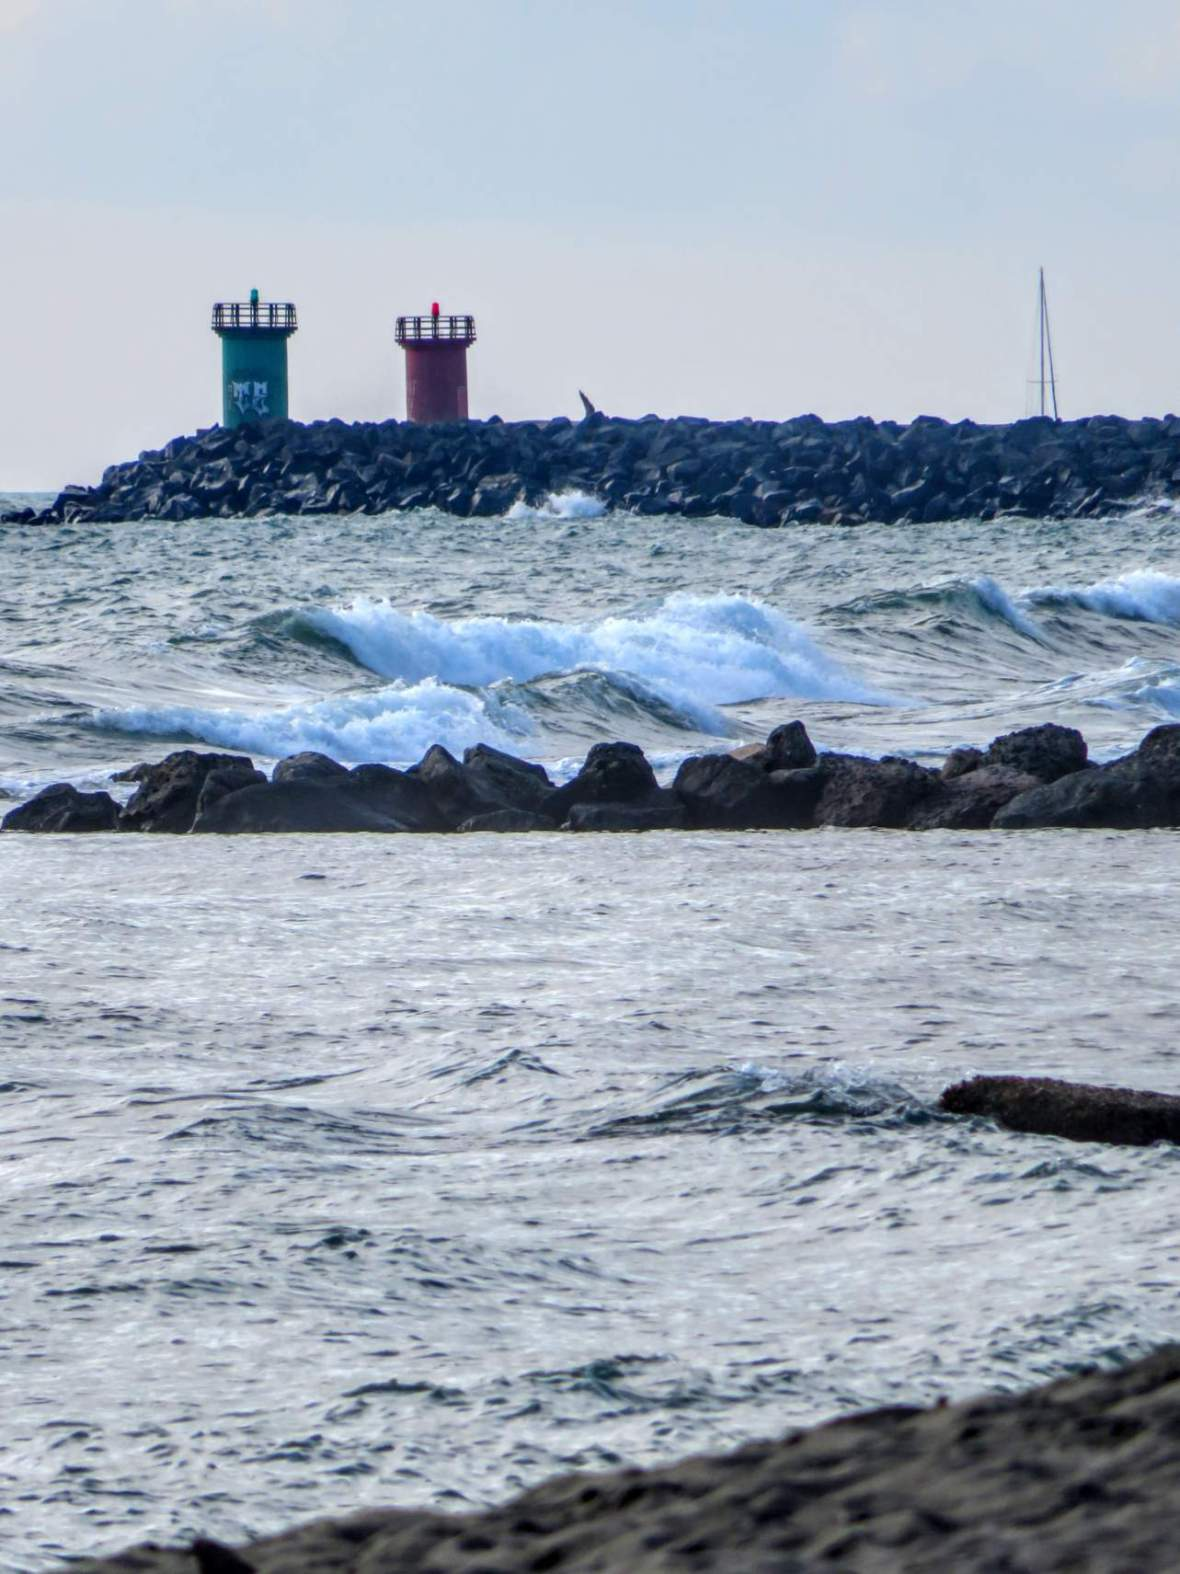 rough sea at the port of Ostia